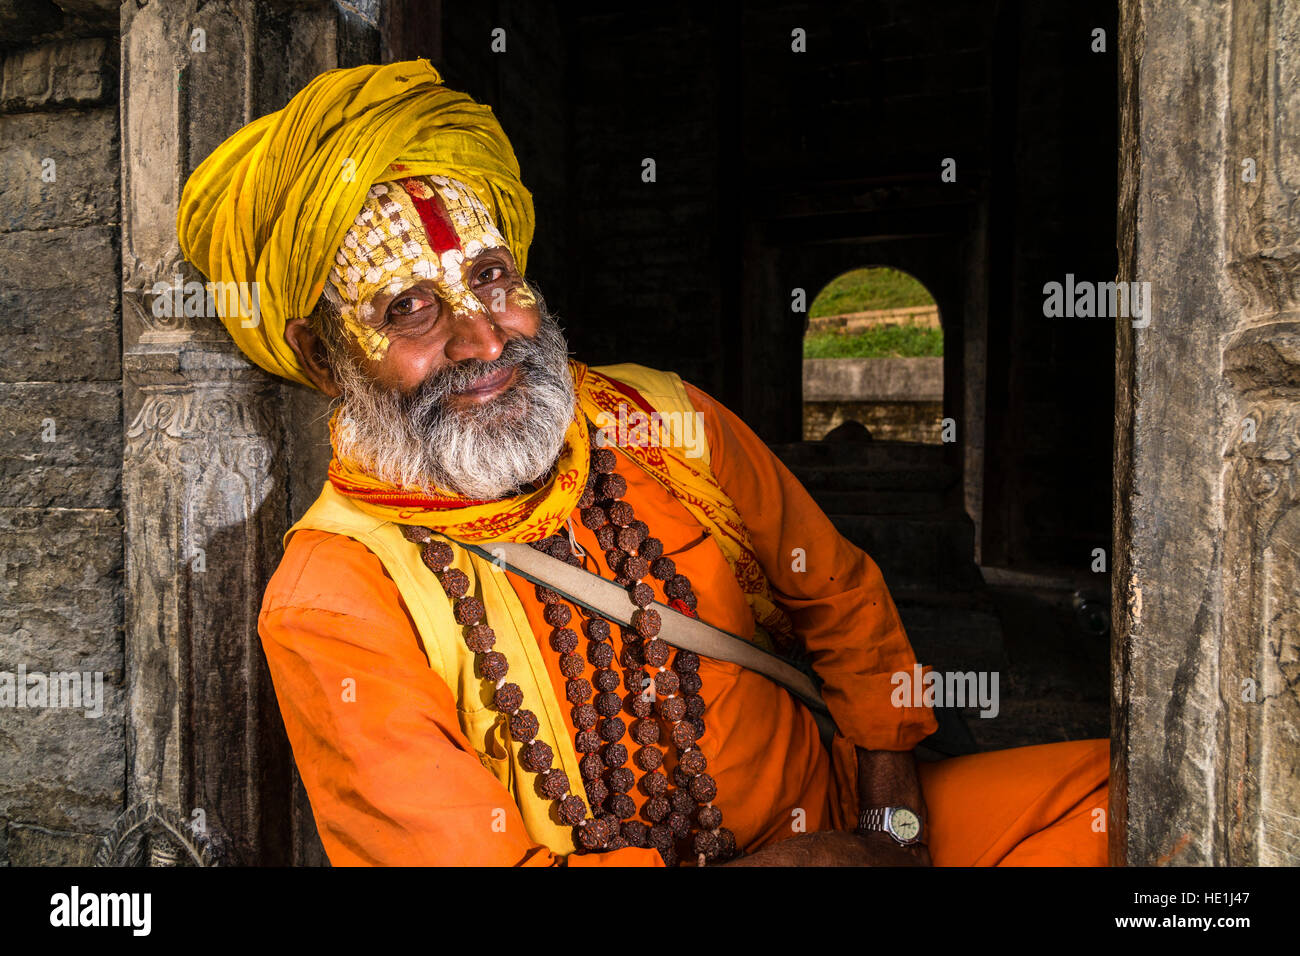 Portait of a Sadhu, holy man, sitting at a little shrine at Pashupatinath temple at the banks of Bagmati River - Stock Image